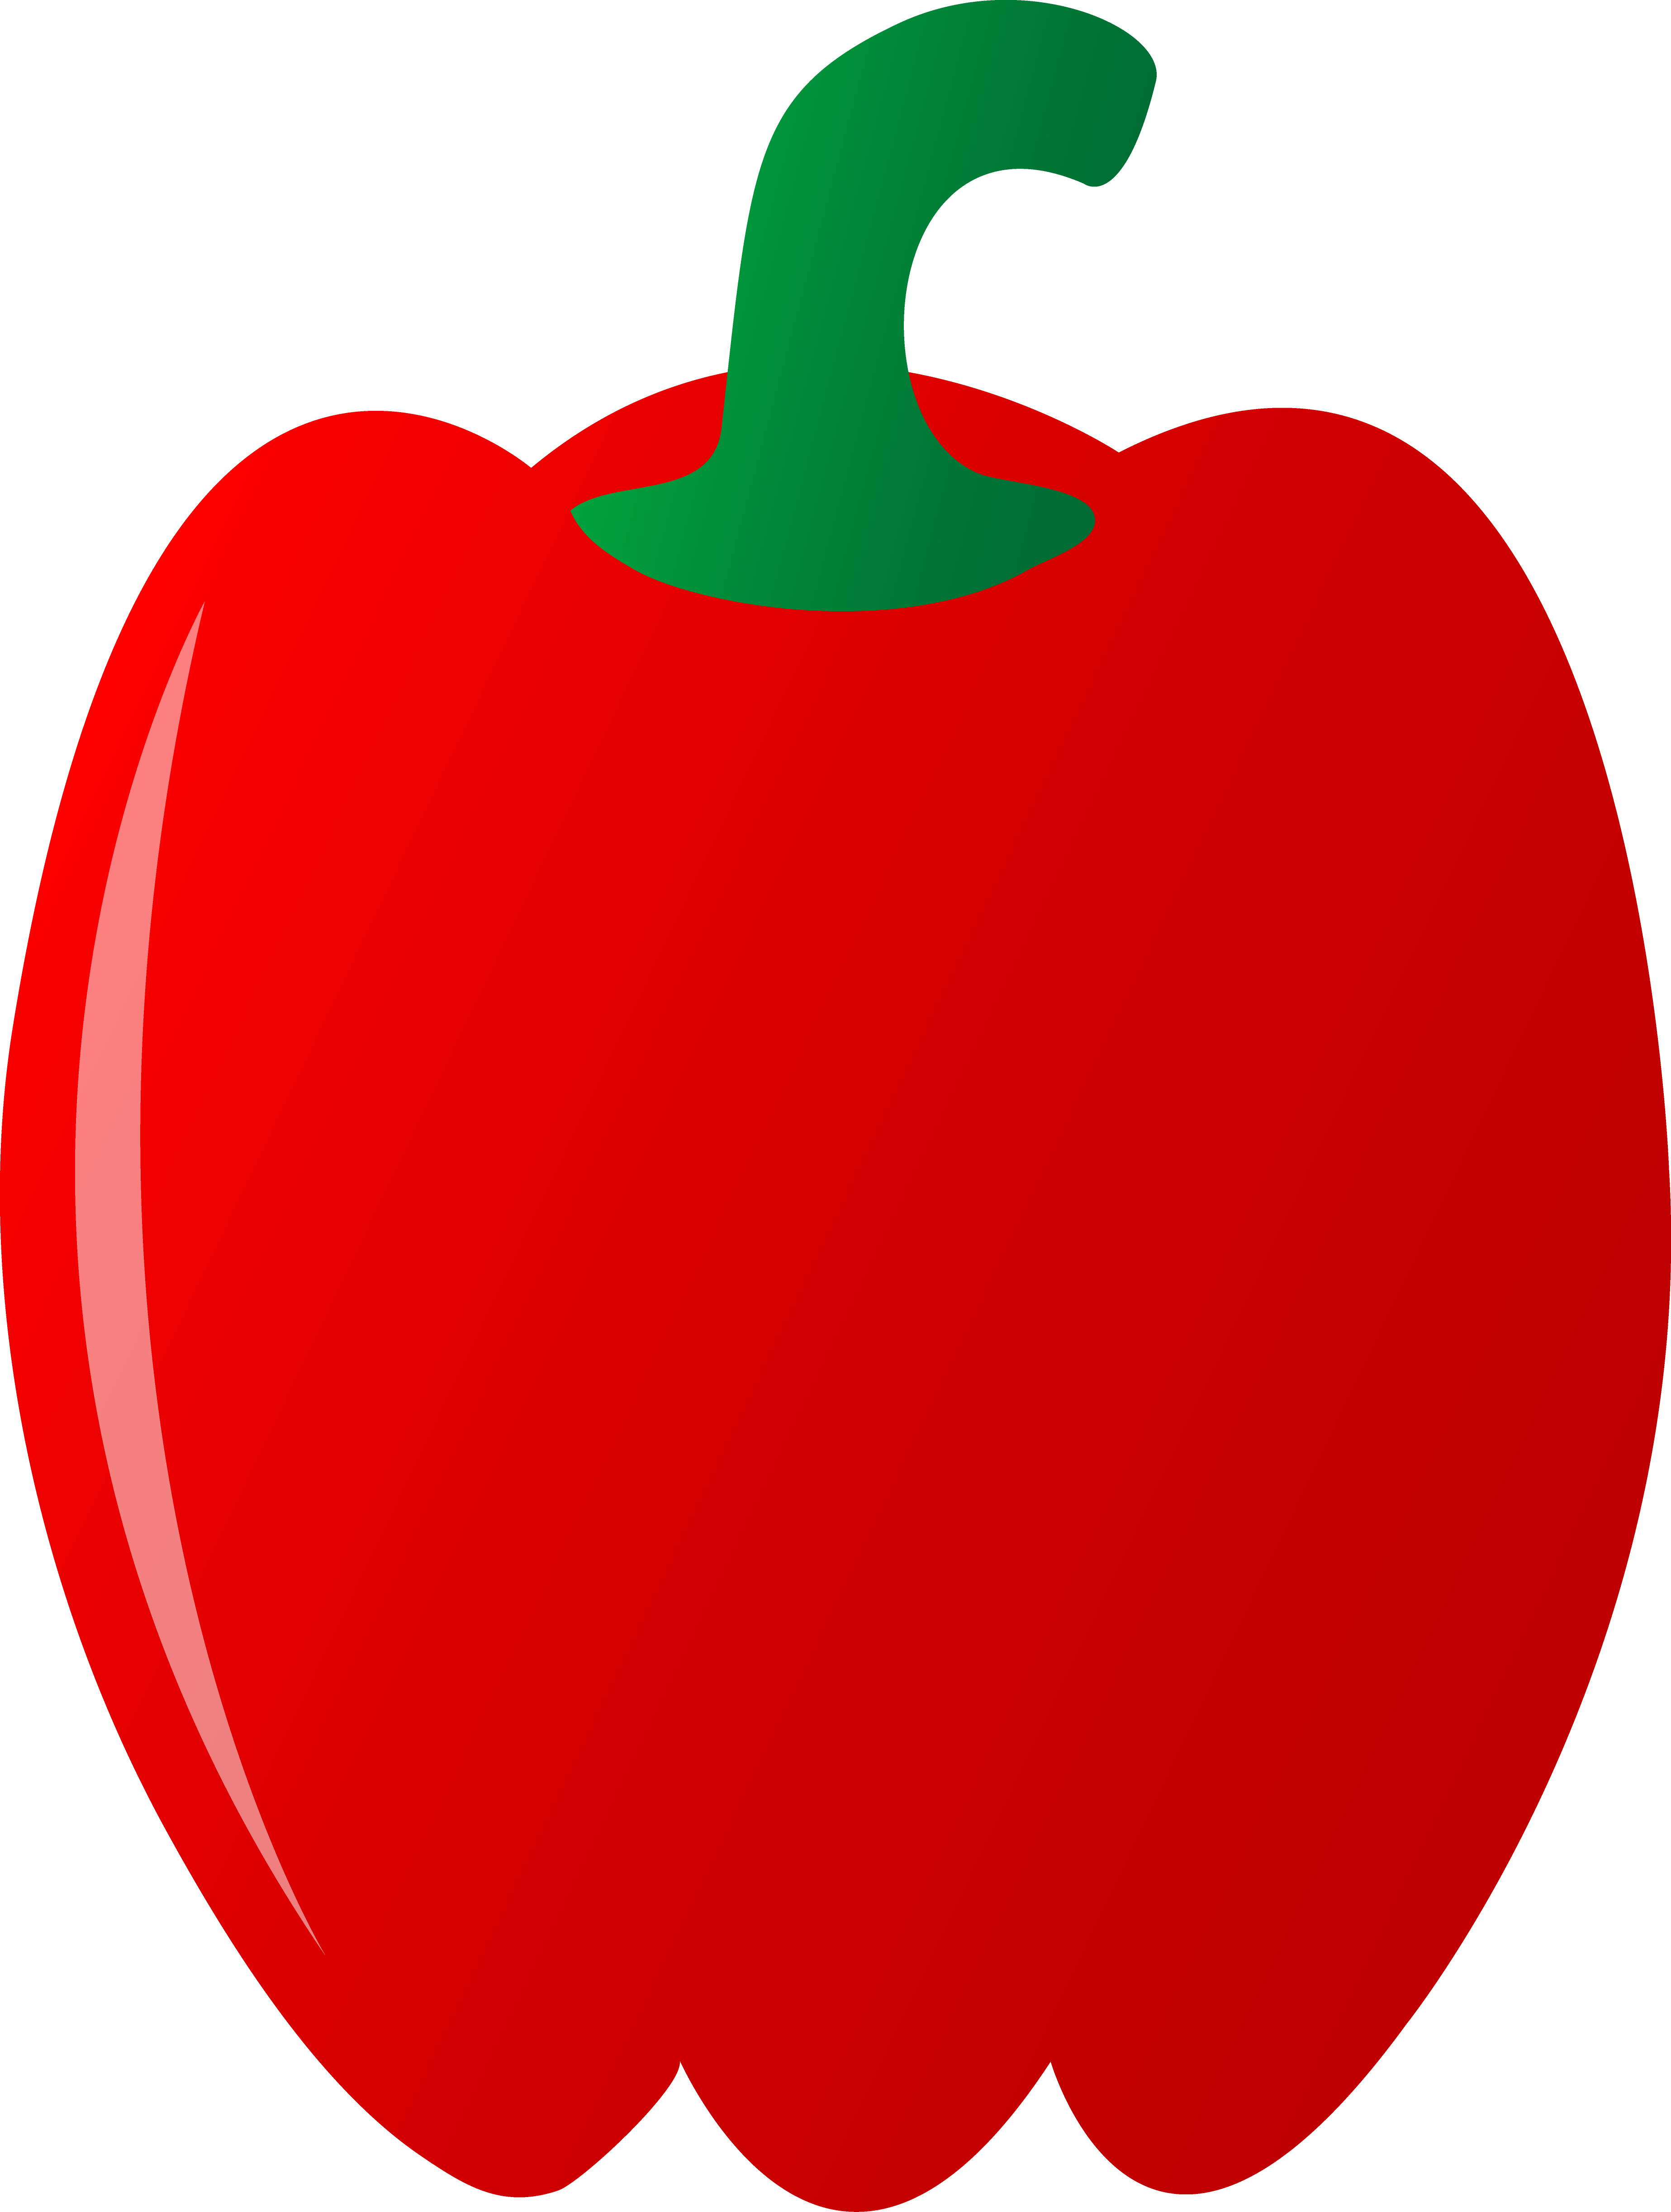 Green bell pepper clipart.